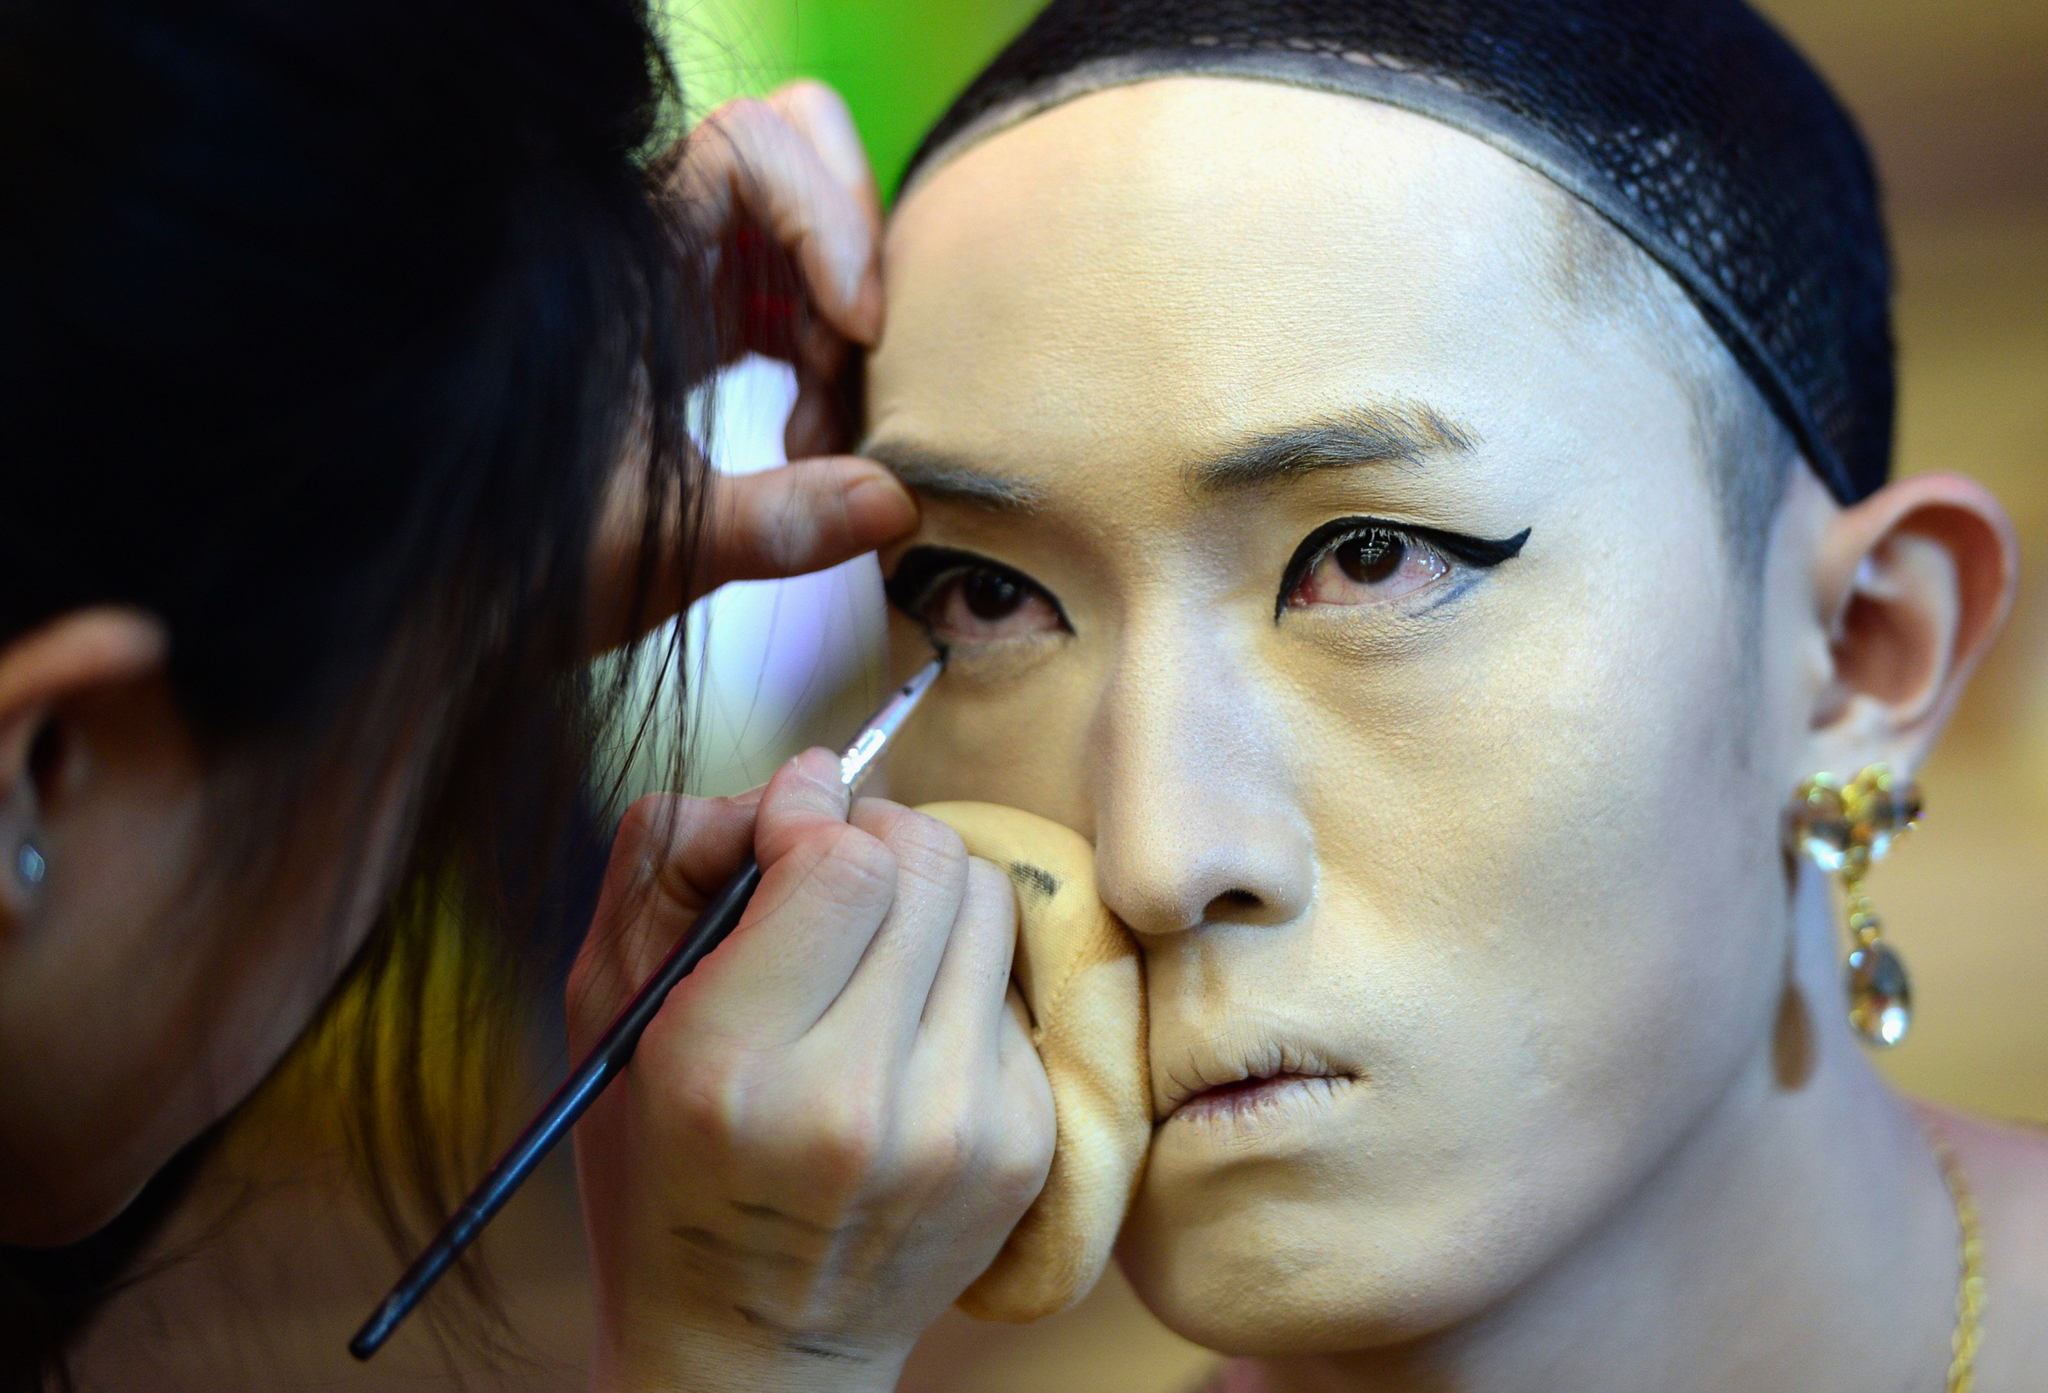 A contestant puts on makeup for a model during a stage makeup competition in Jinan, Shandong province. According to local media, each dresser contestant was assigned with one male model and the dressers' expertise were judged by to what the extent they could feminize the models' appearance.